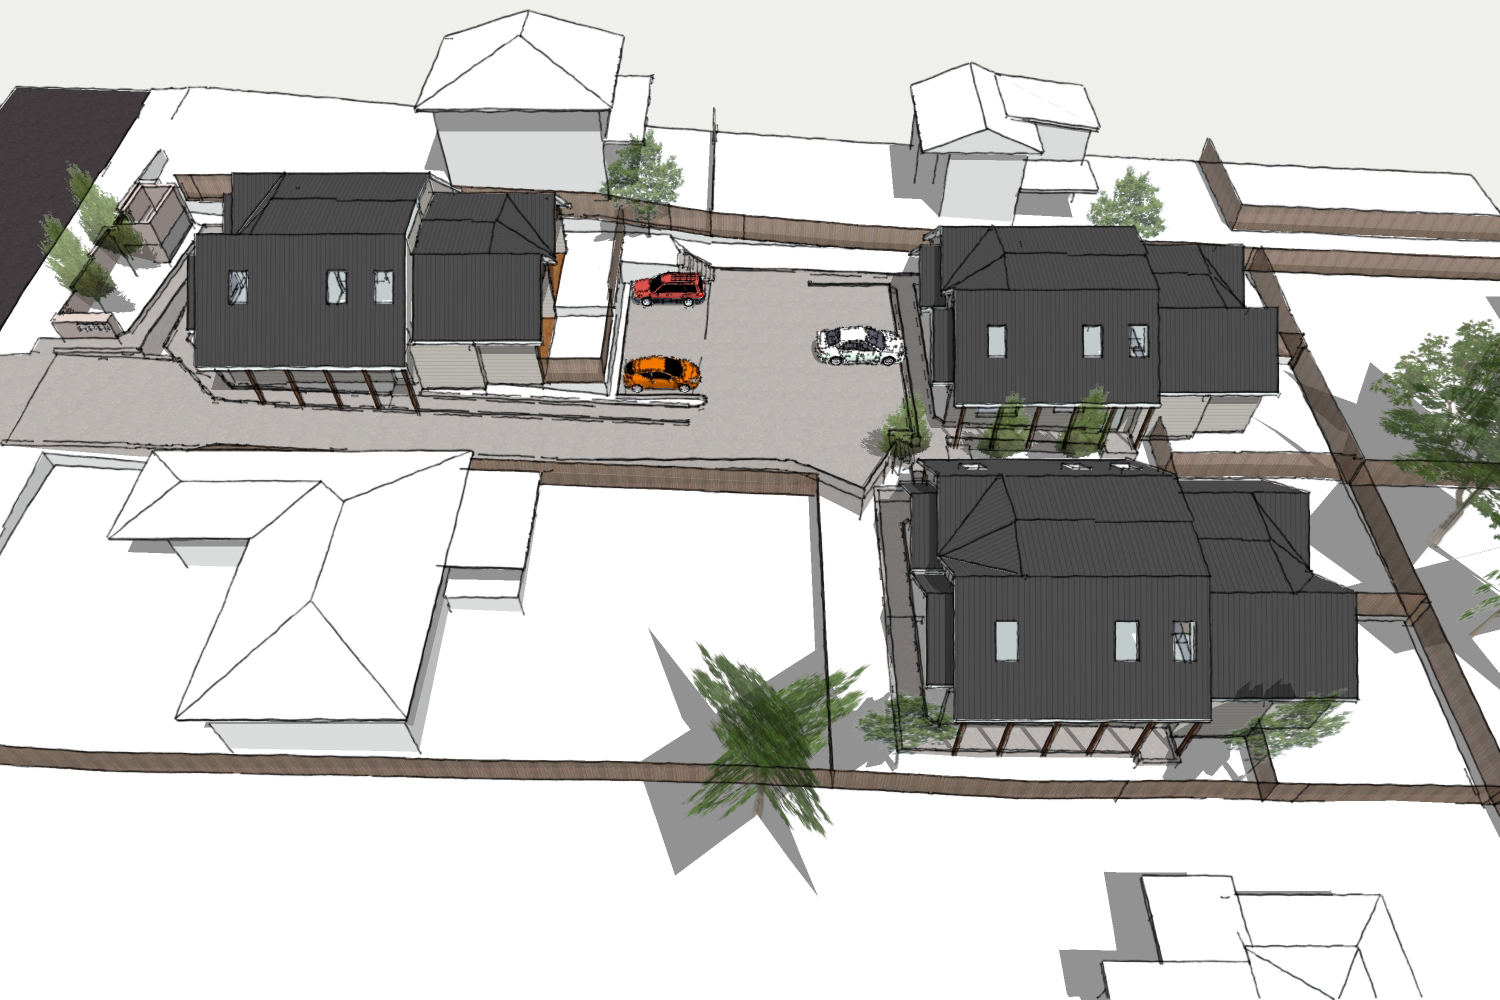 DA APPROVED !!!!!! Townhouse Development Under State Environmental ...